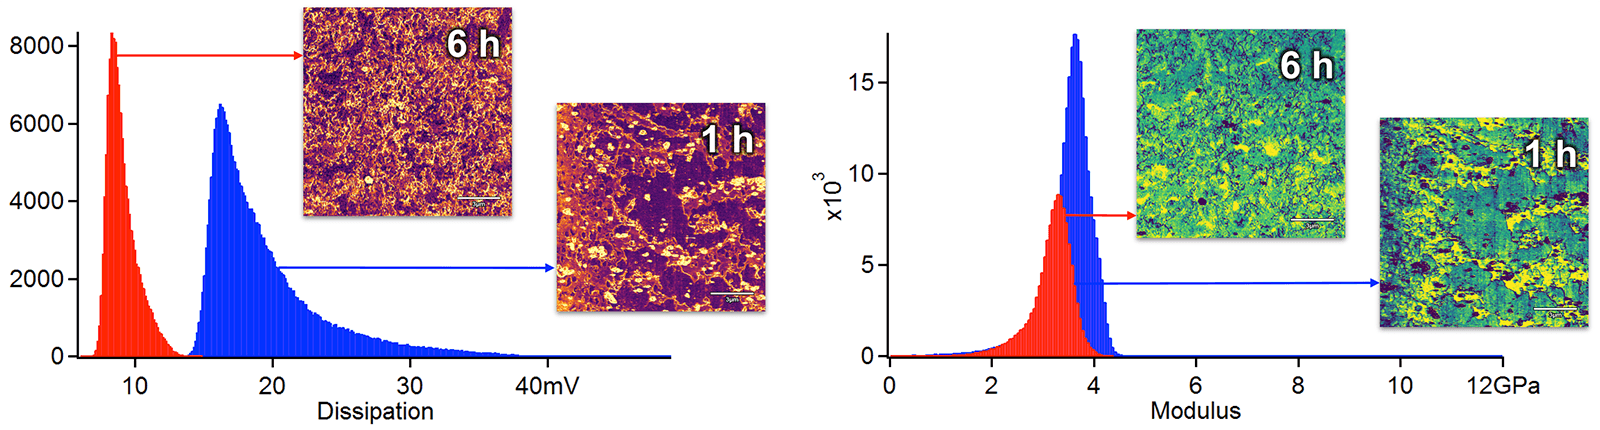 AFM measurements of dissipation and modulus on a tribofilm